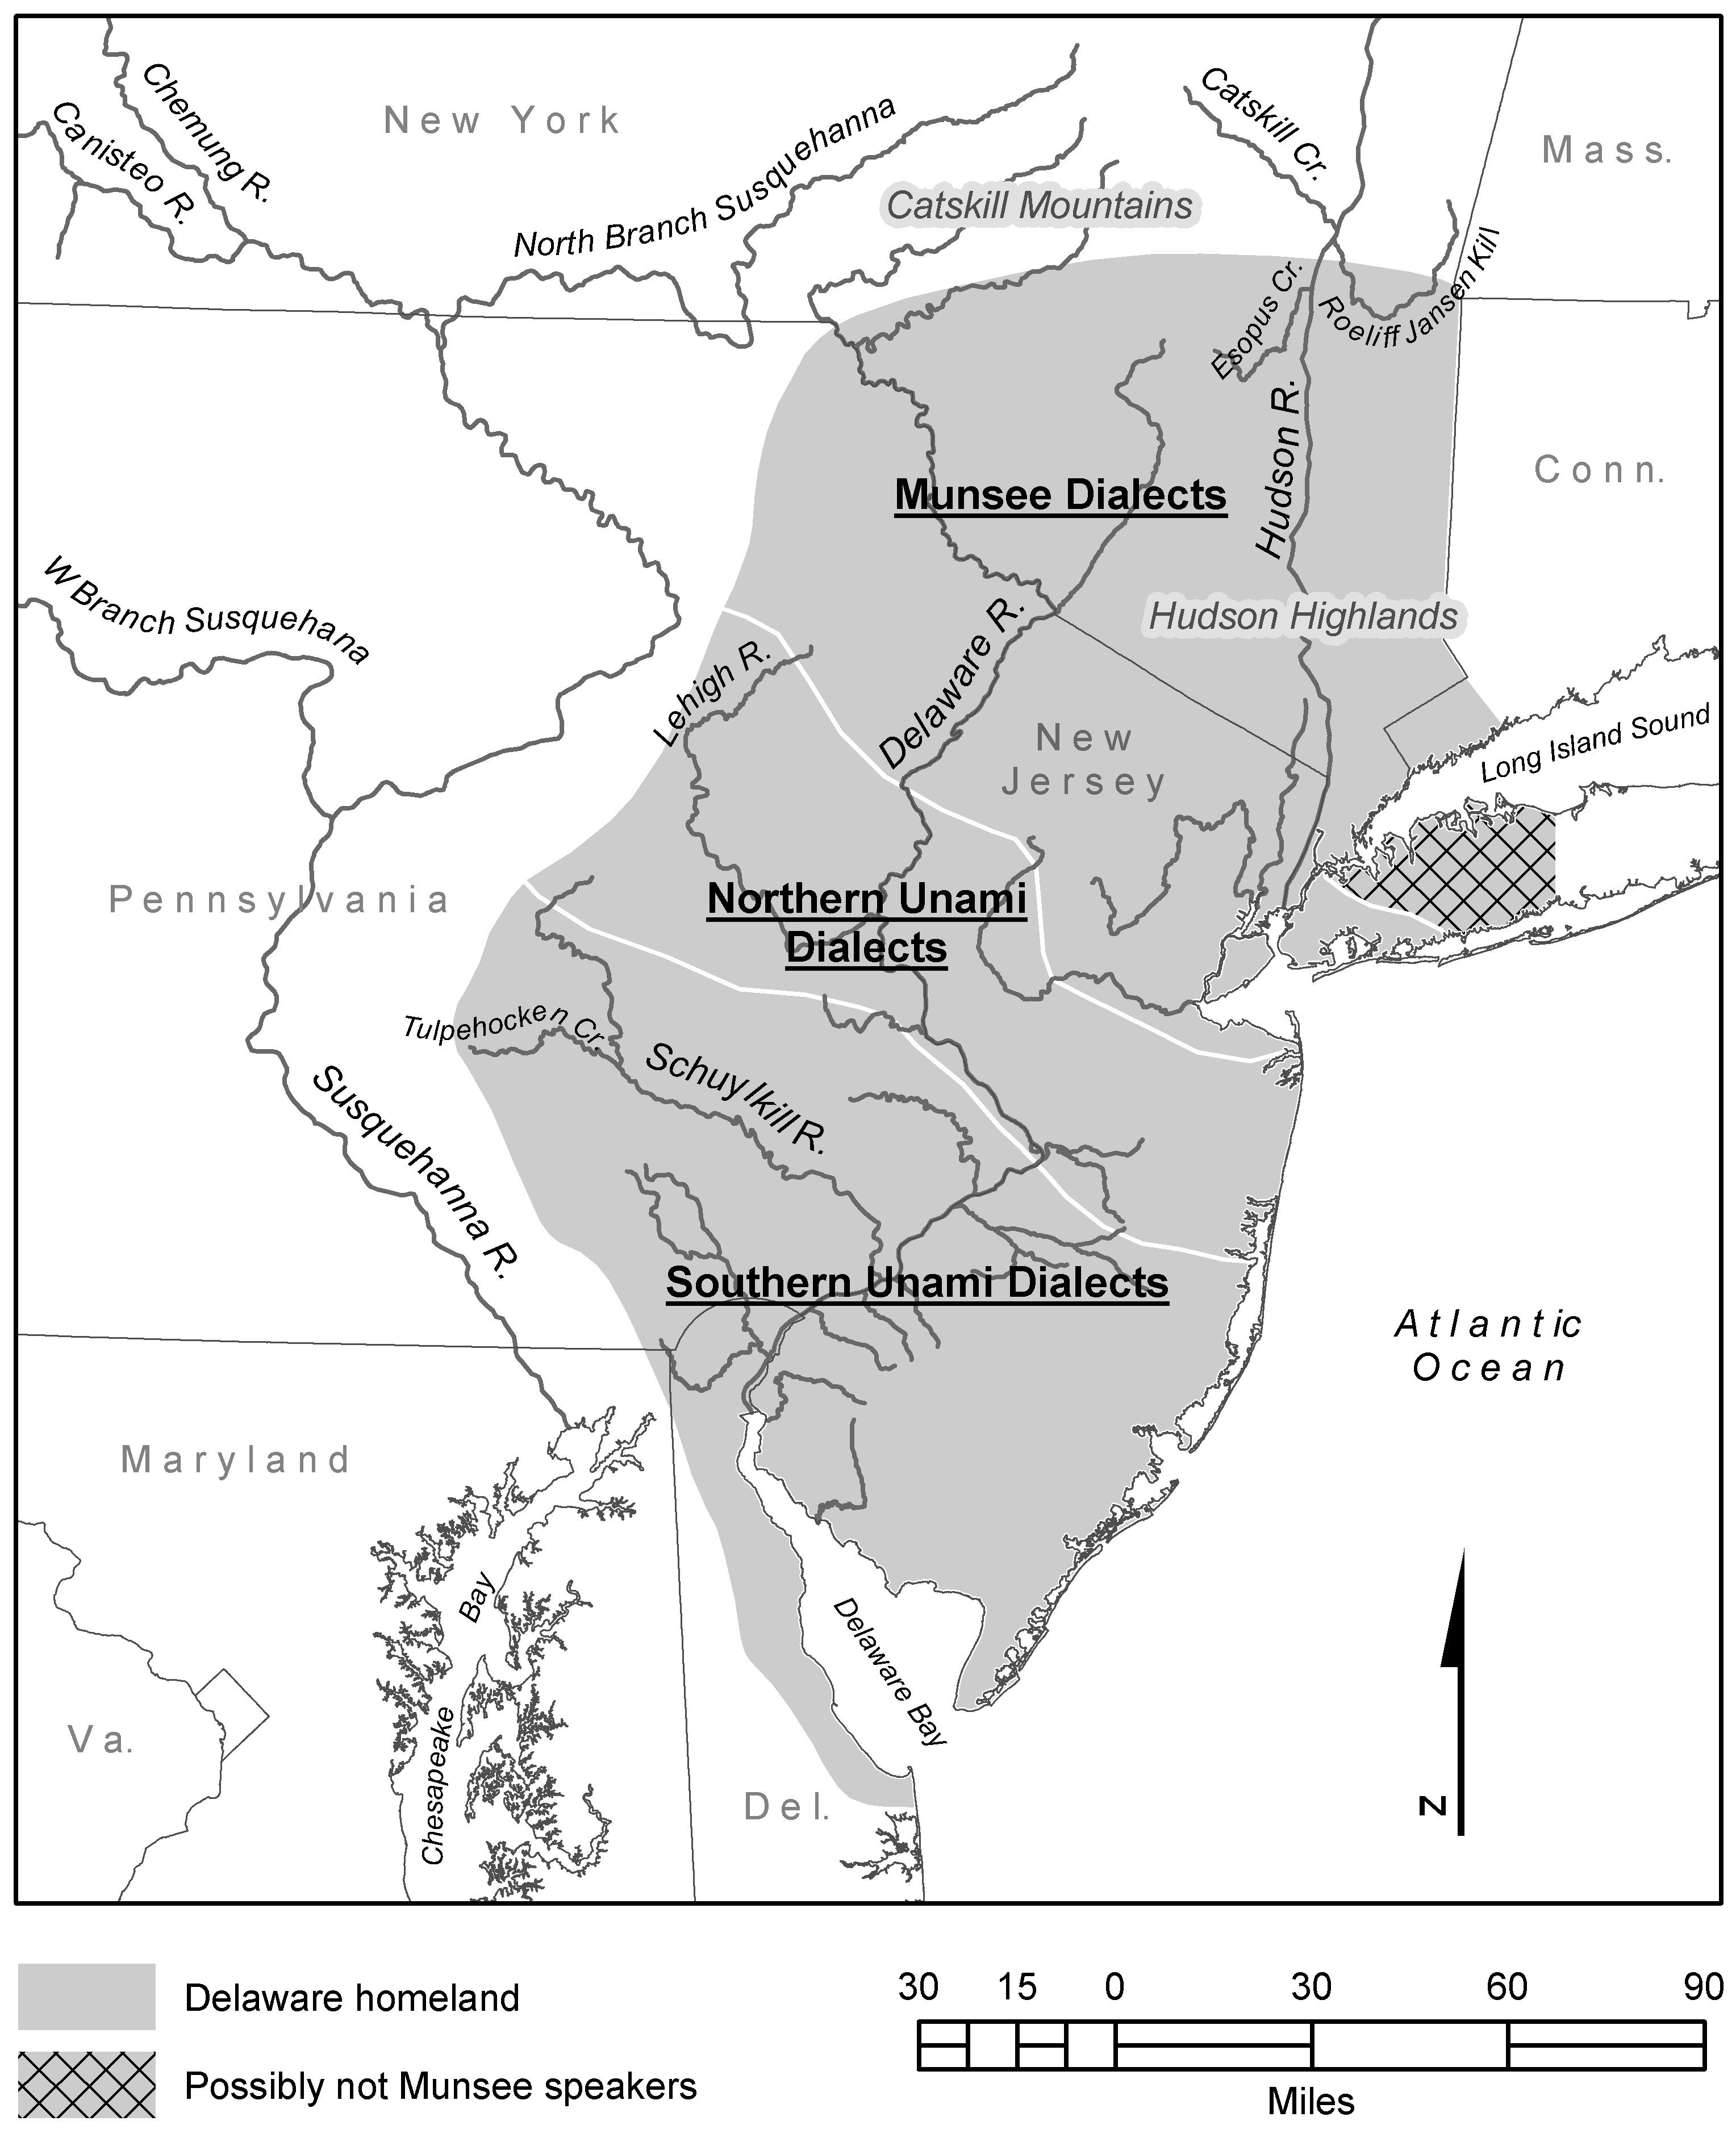 Lenape delaware homelands with dialects featured notice long lenape delaware homelands with dialects featured notice long island natives are not clearly publicscrutiny Image collections